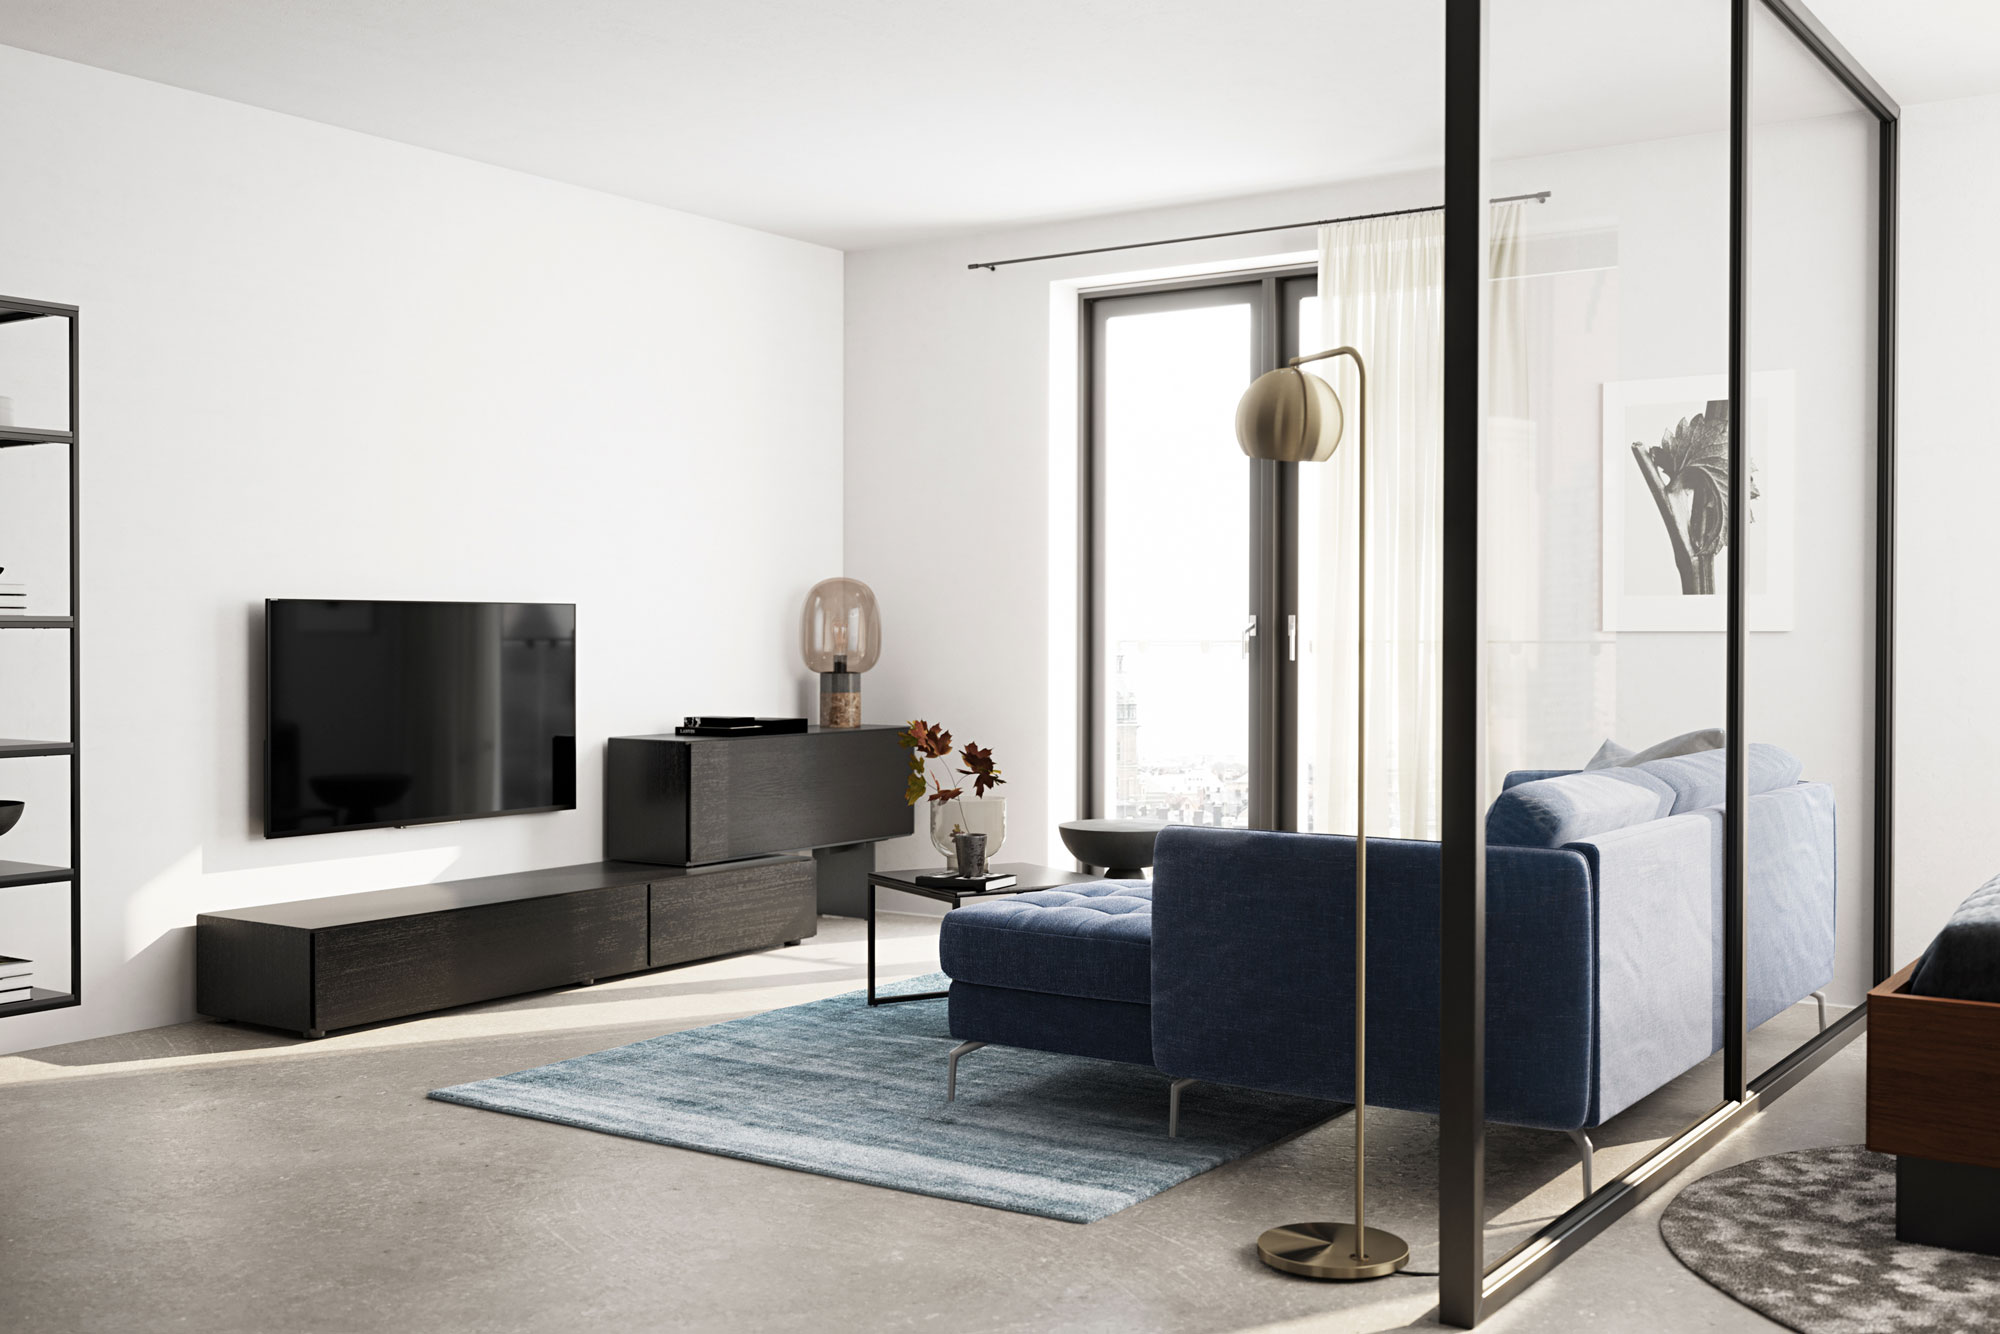 Living room with blue sofa, black coffee table and KIP floor lamp